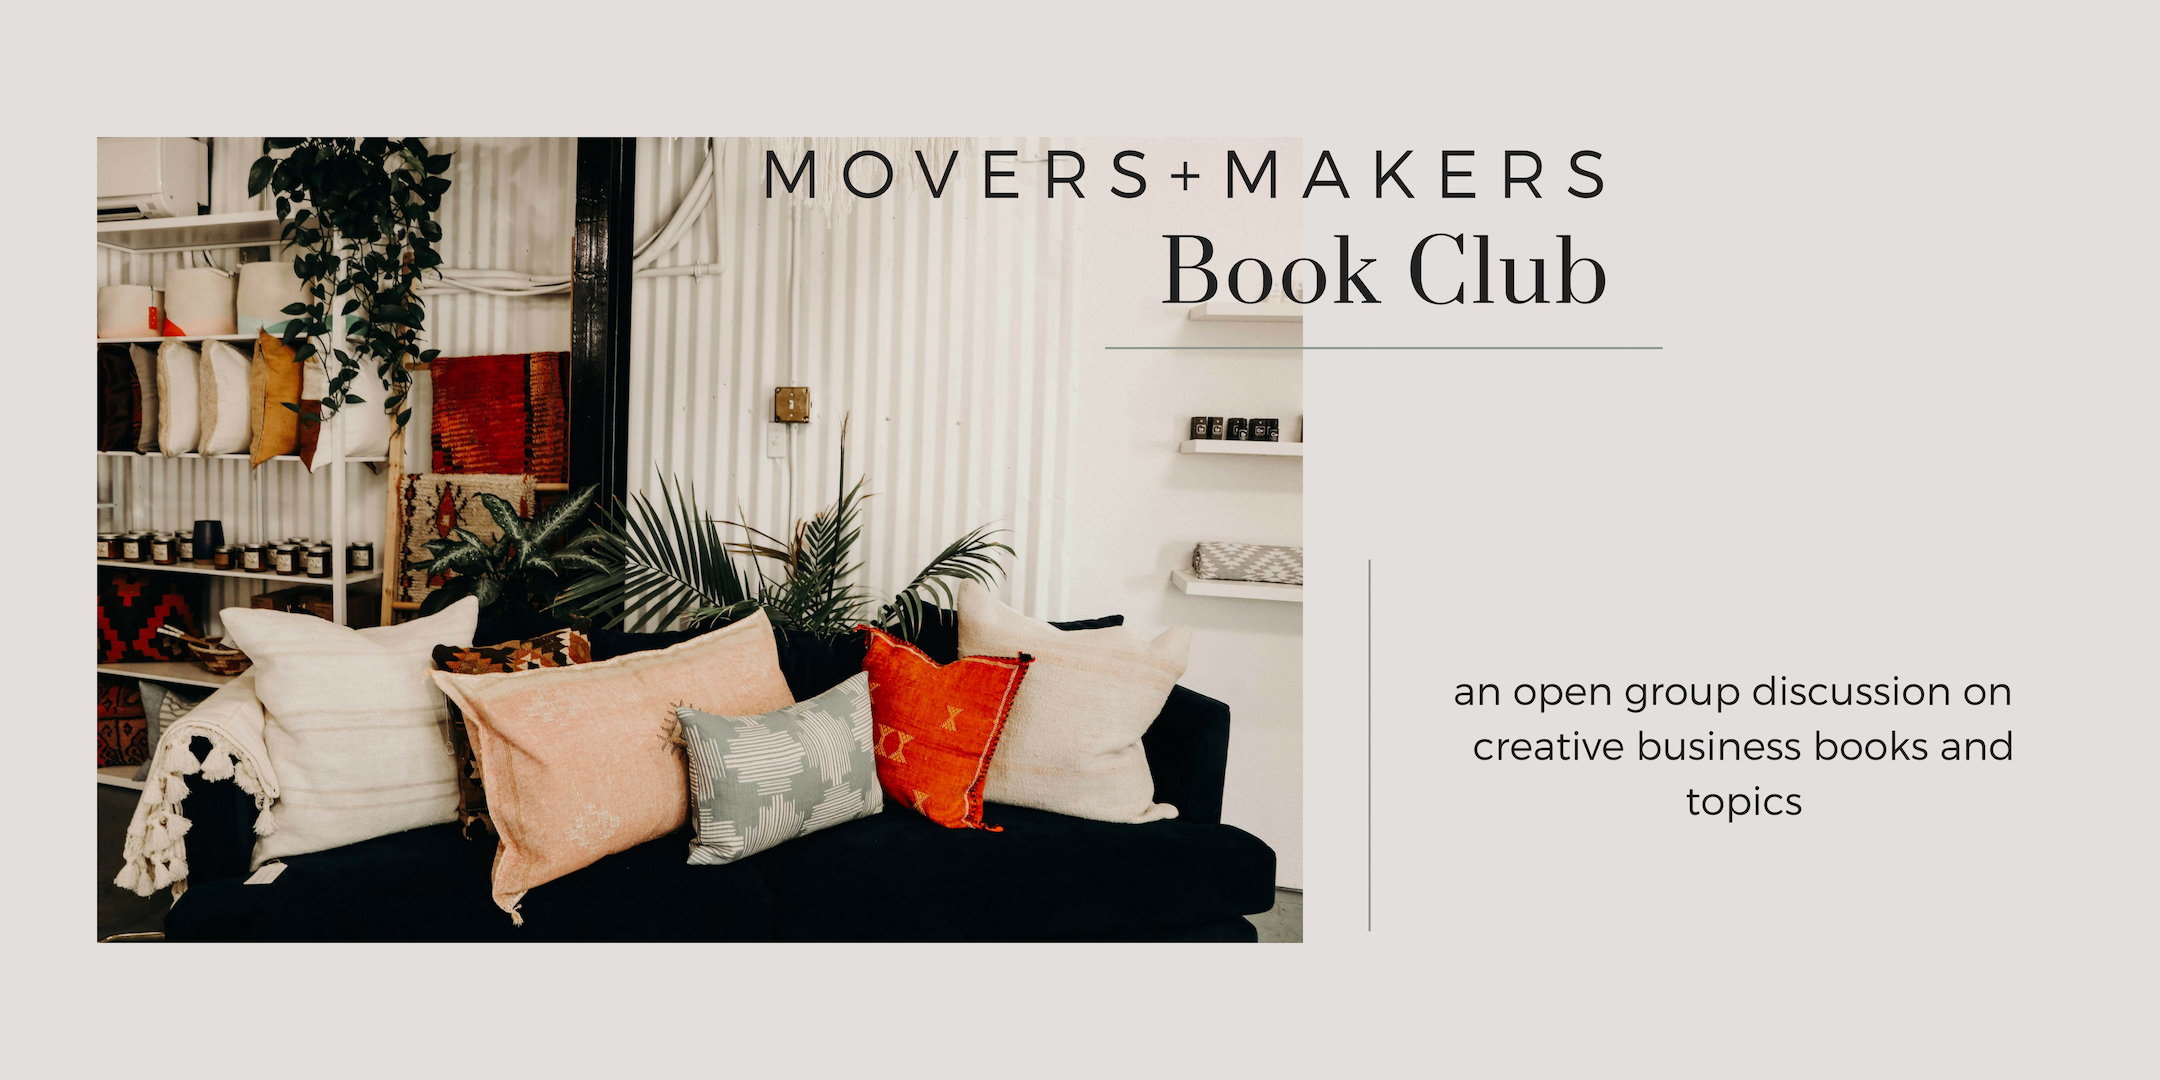 Movers + Makers book club